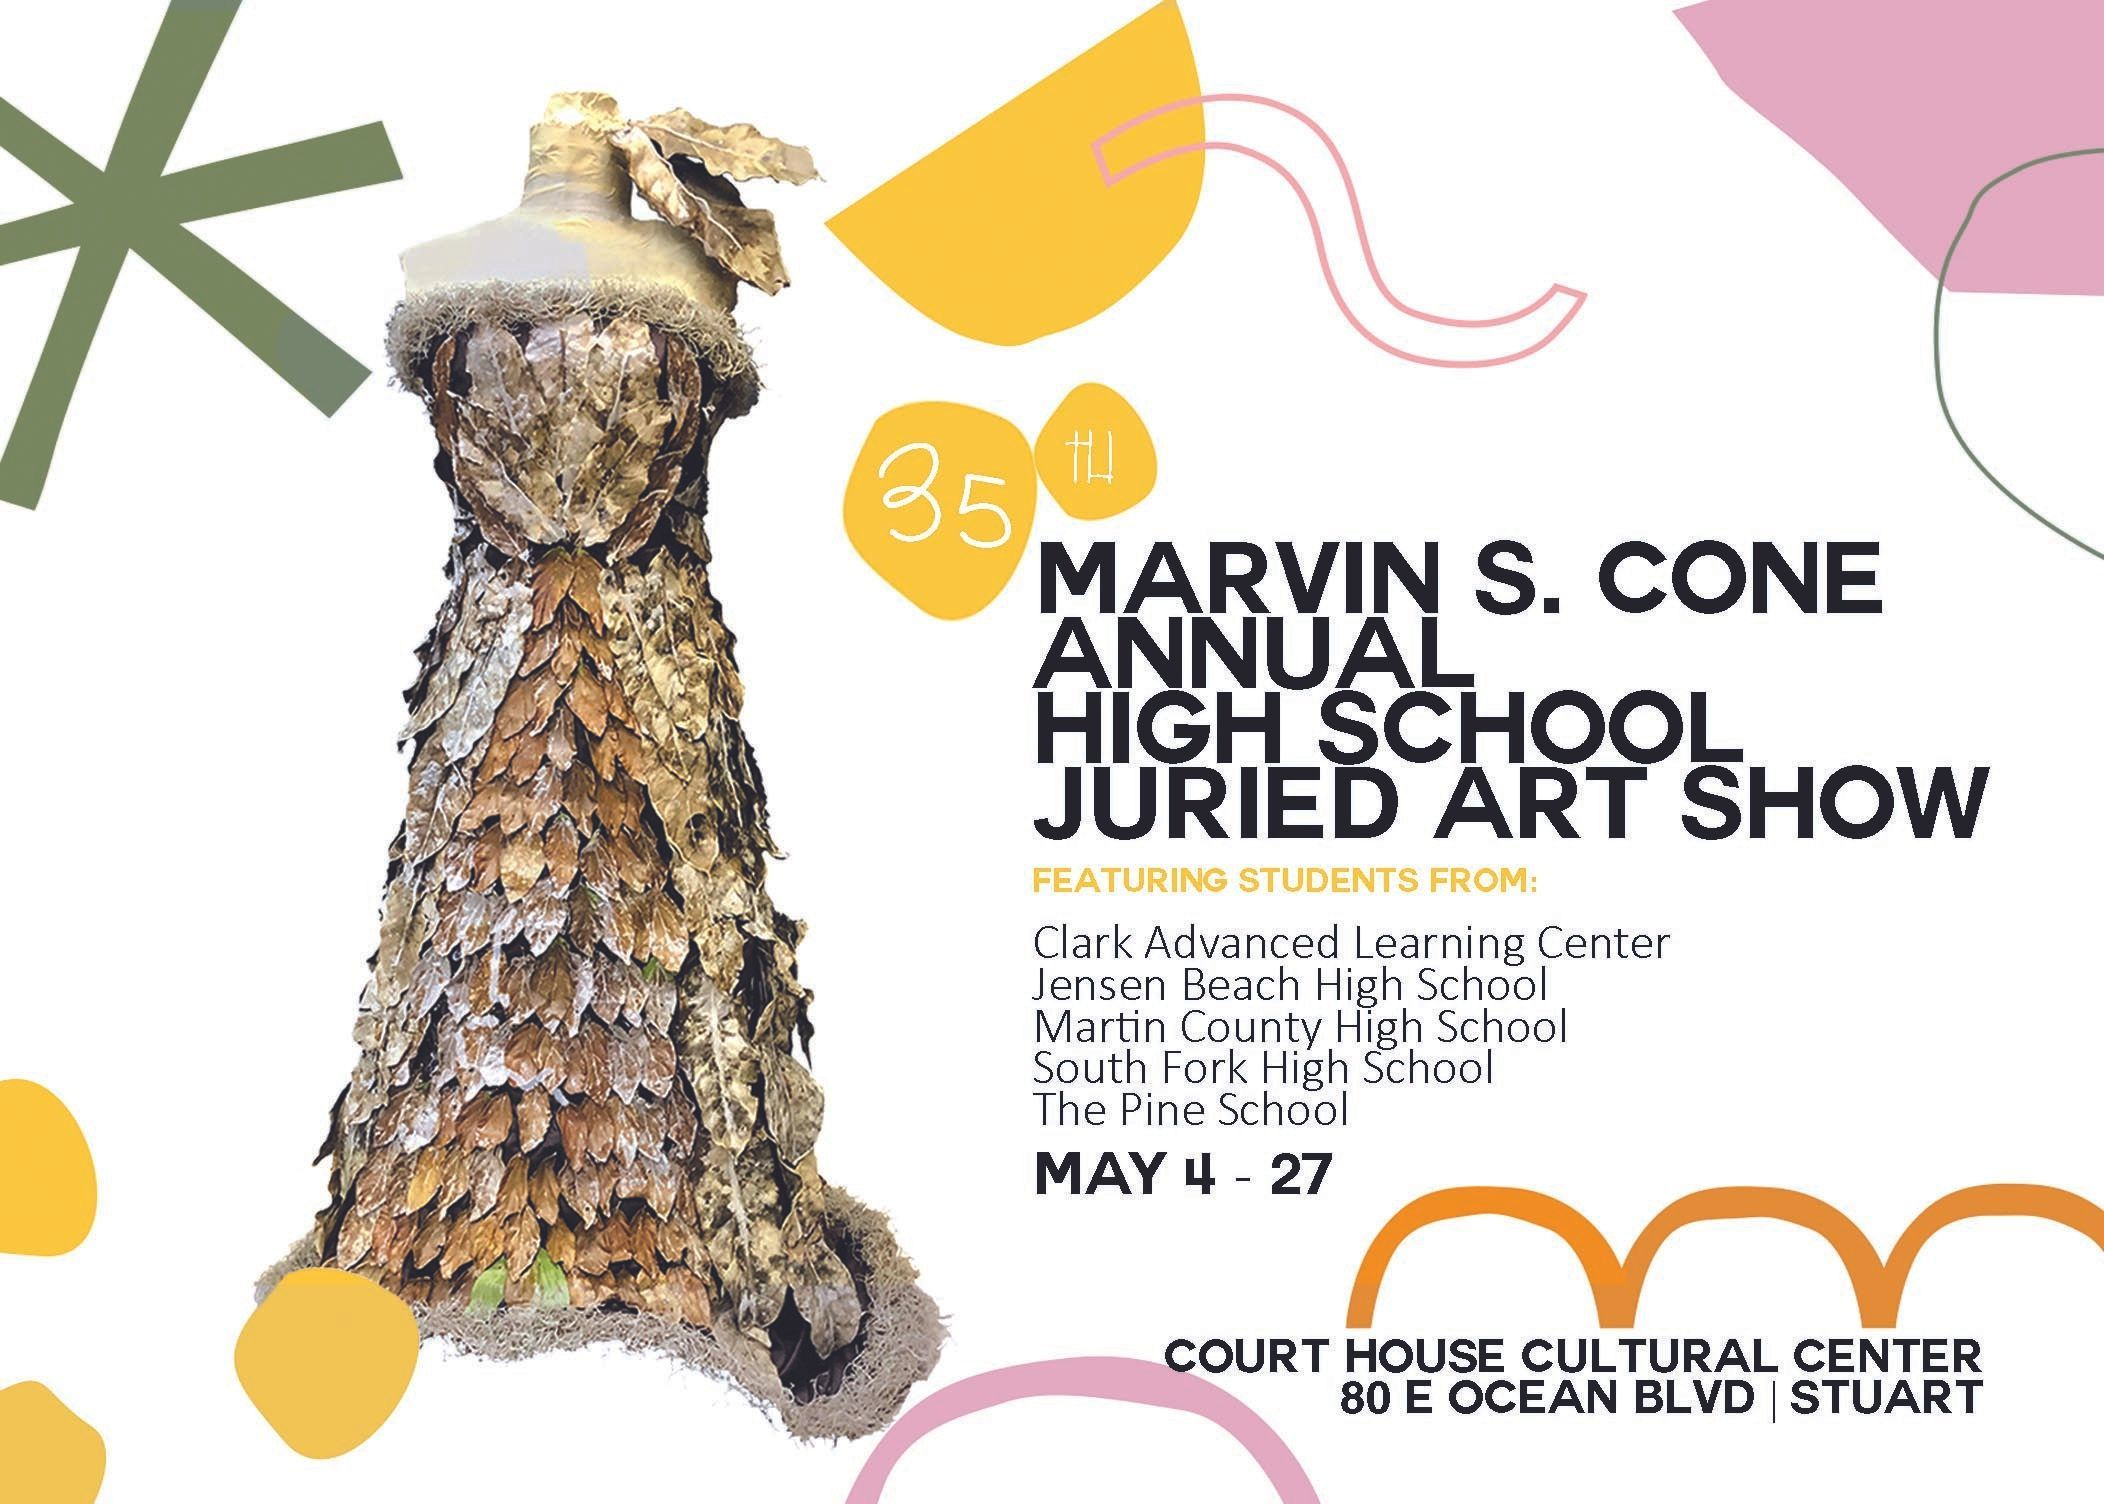 Marvin S. Cone 35th Annual High School Juried Art Show